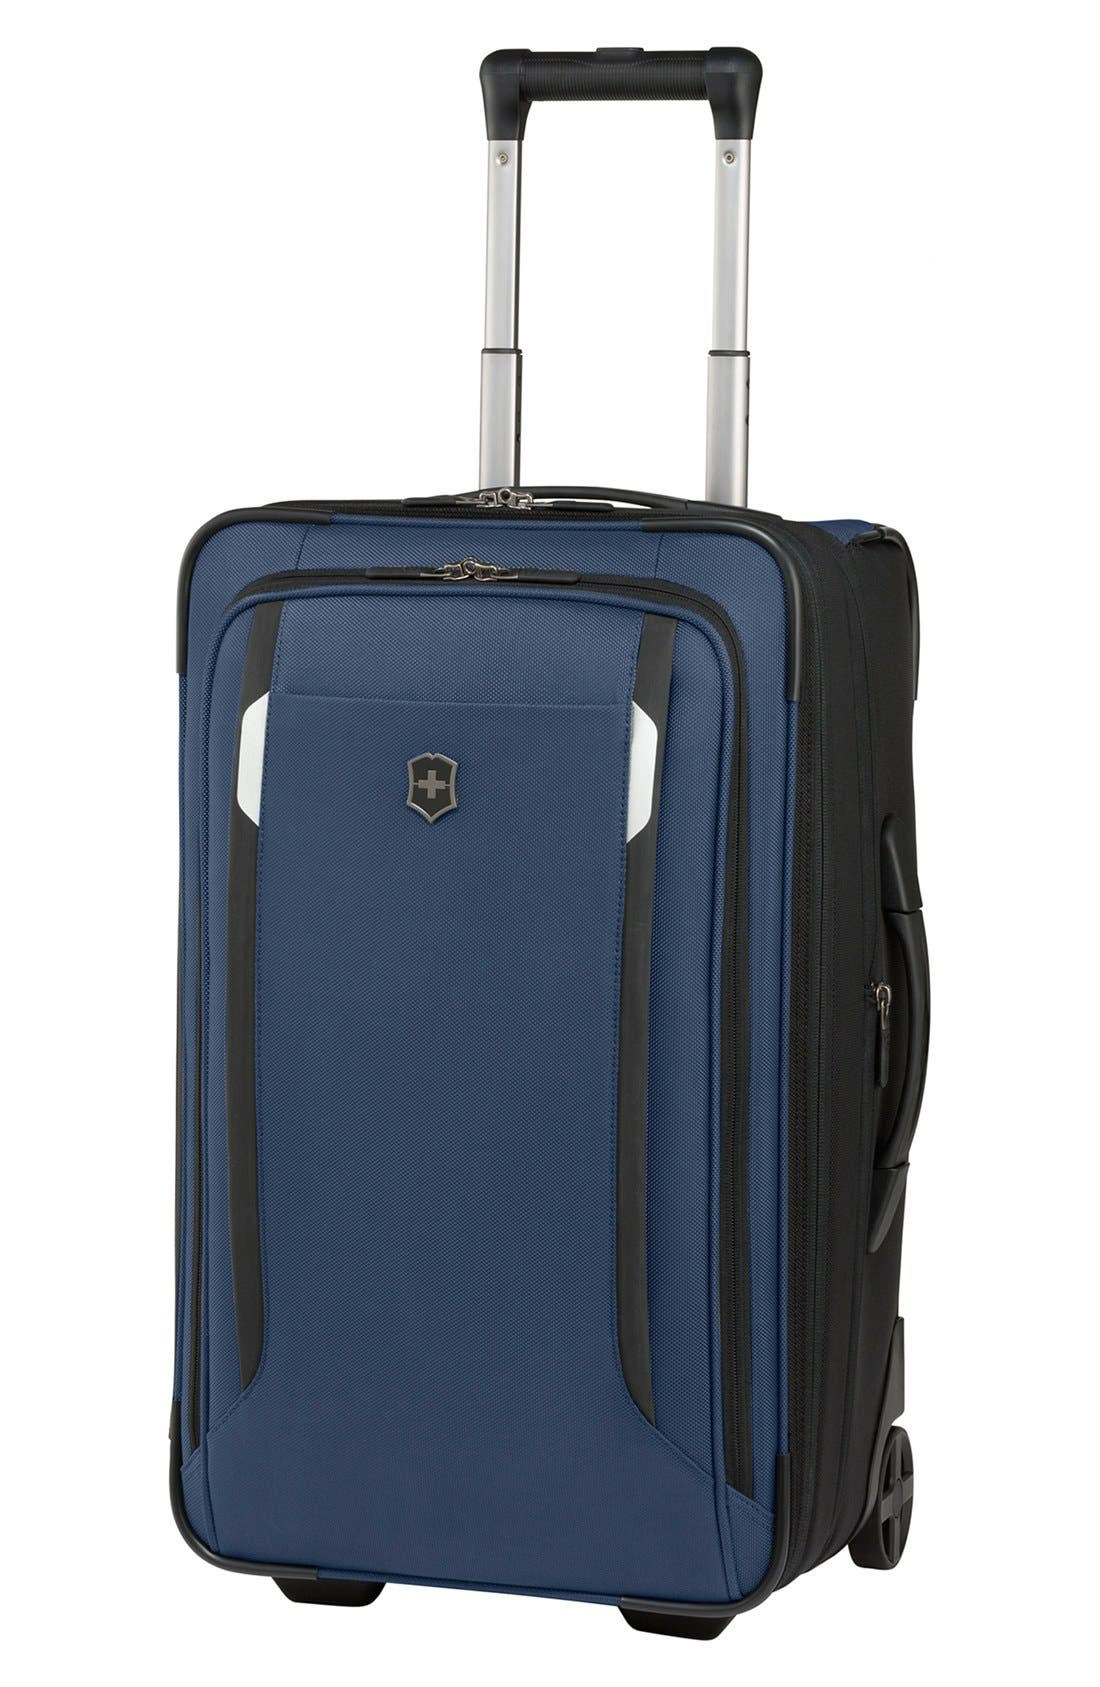 WT 5.0 Wheeled 22-Inch Carry-On,                             Main thumbnail 1, color,                             420